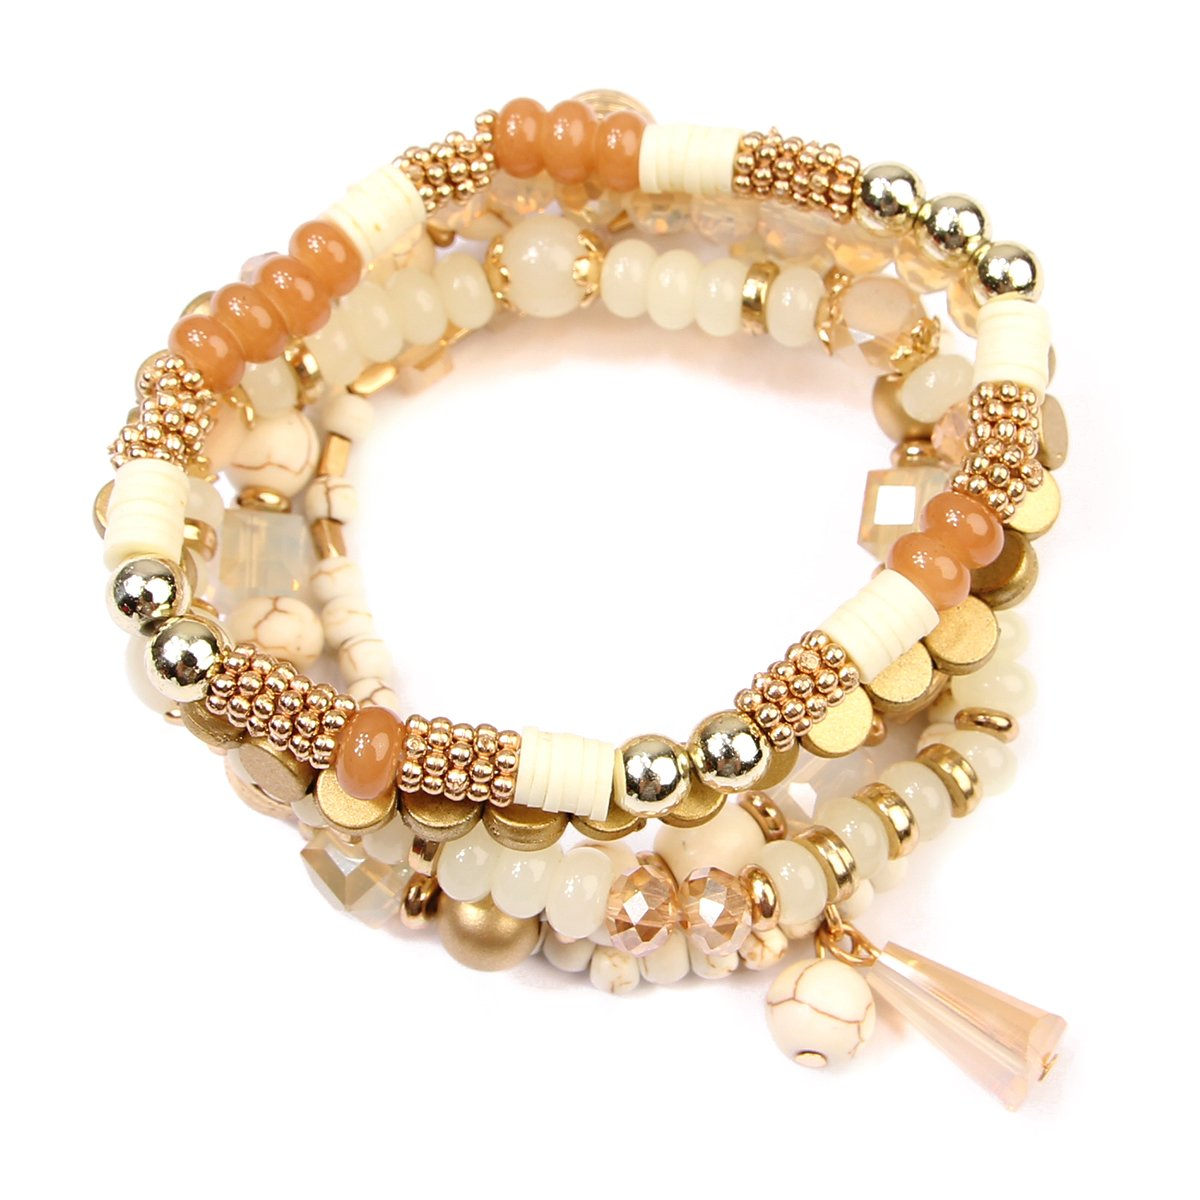 RIAH FASHION Bead Layering Multi Color Statement Bracelets - Stackable Beaded Strand Stretch Bangles (Natural)